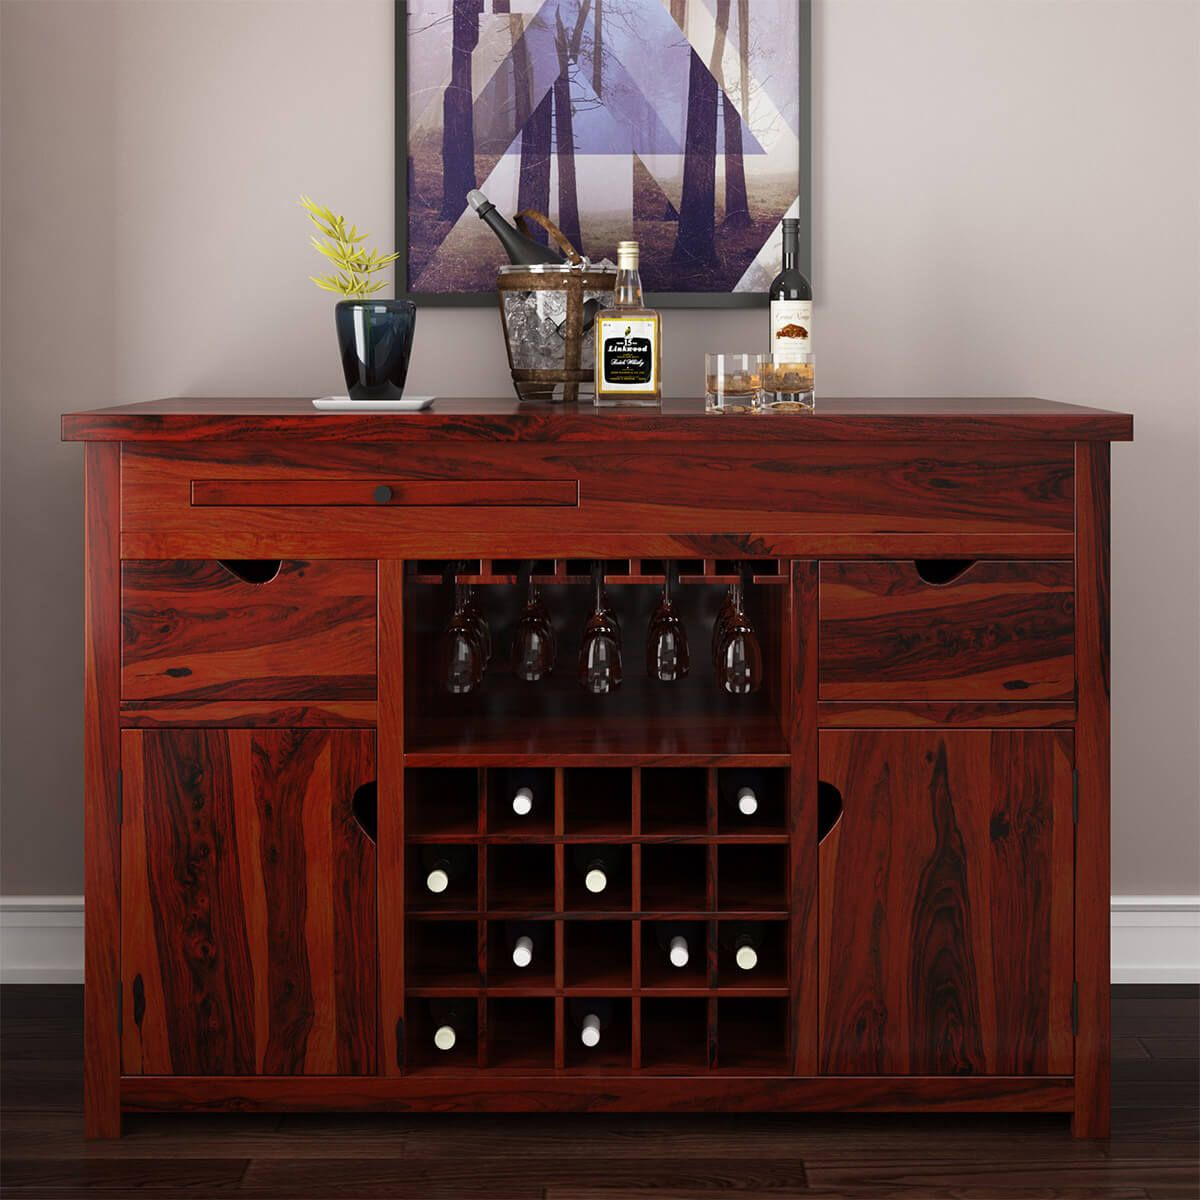 Pin By Sierralivingconcepts Rustic On Bar Cabinets Sierralivingconcepts Com Wine Storage Wine Bar Cabinet Wood Buffet